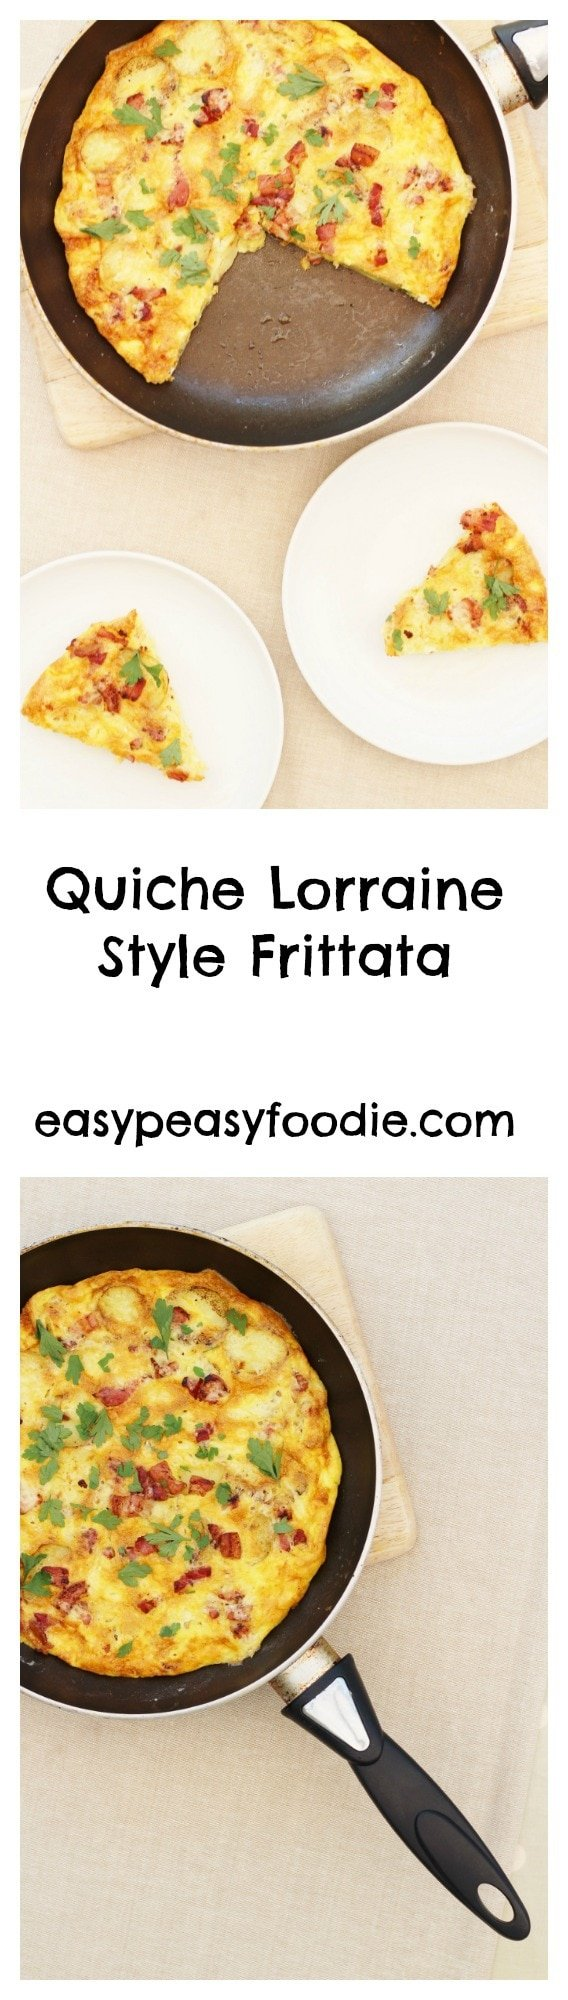 Quiche Lorraine Style Frittata Pinnable Image for Pinterest